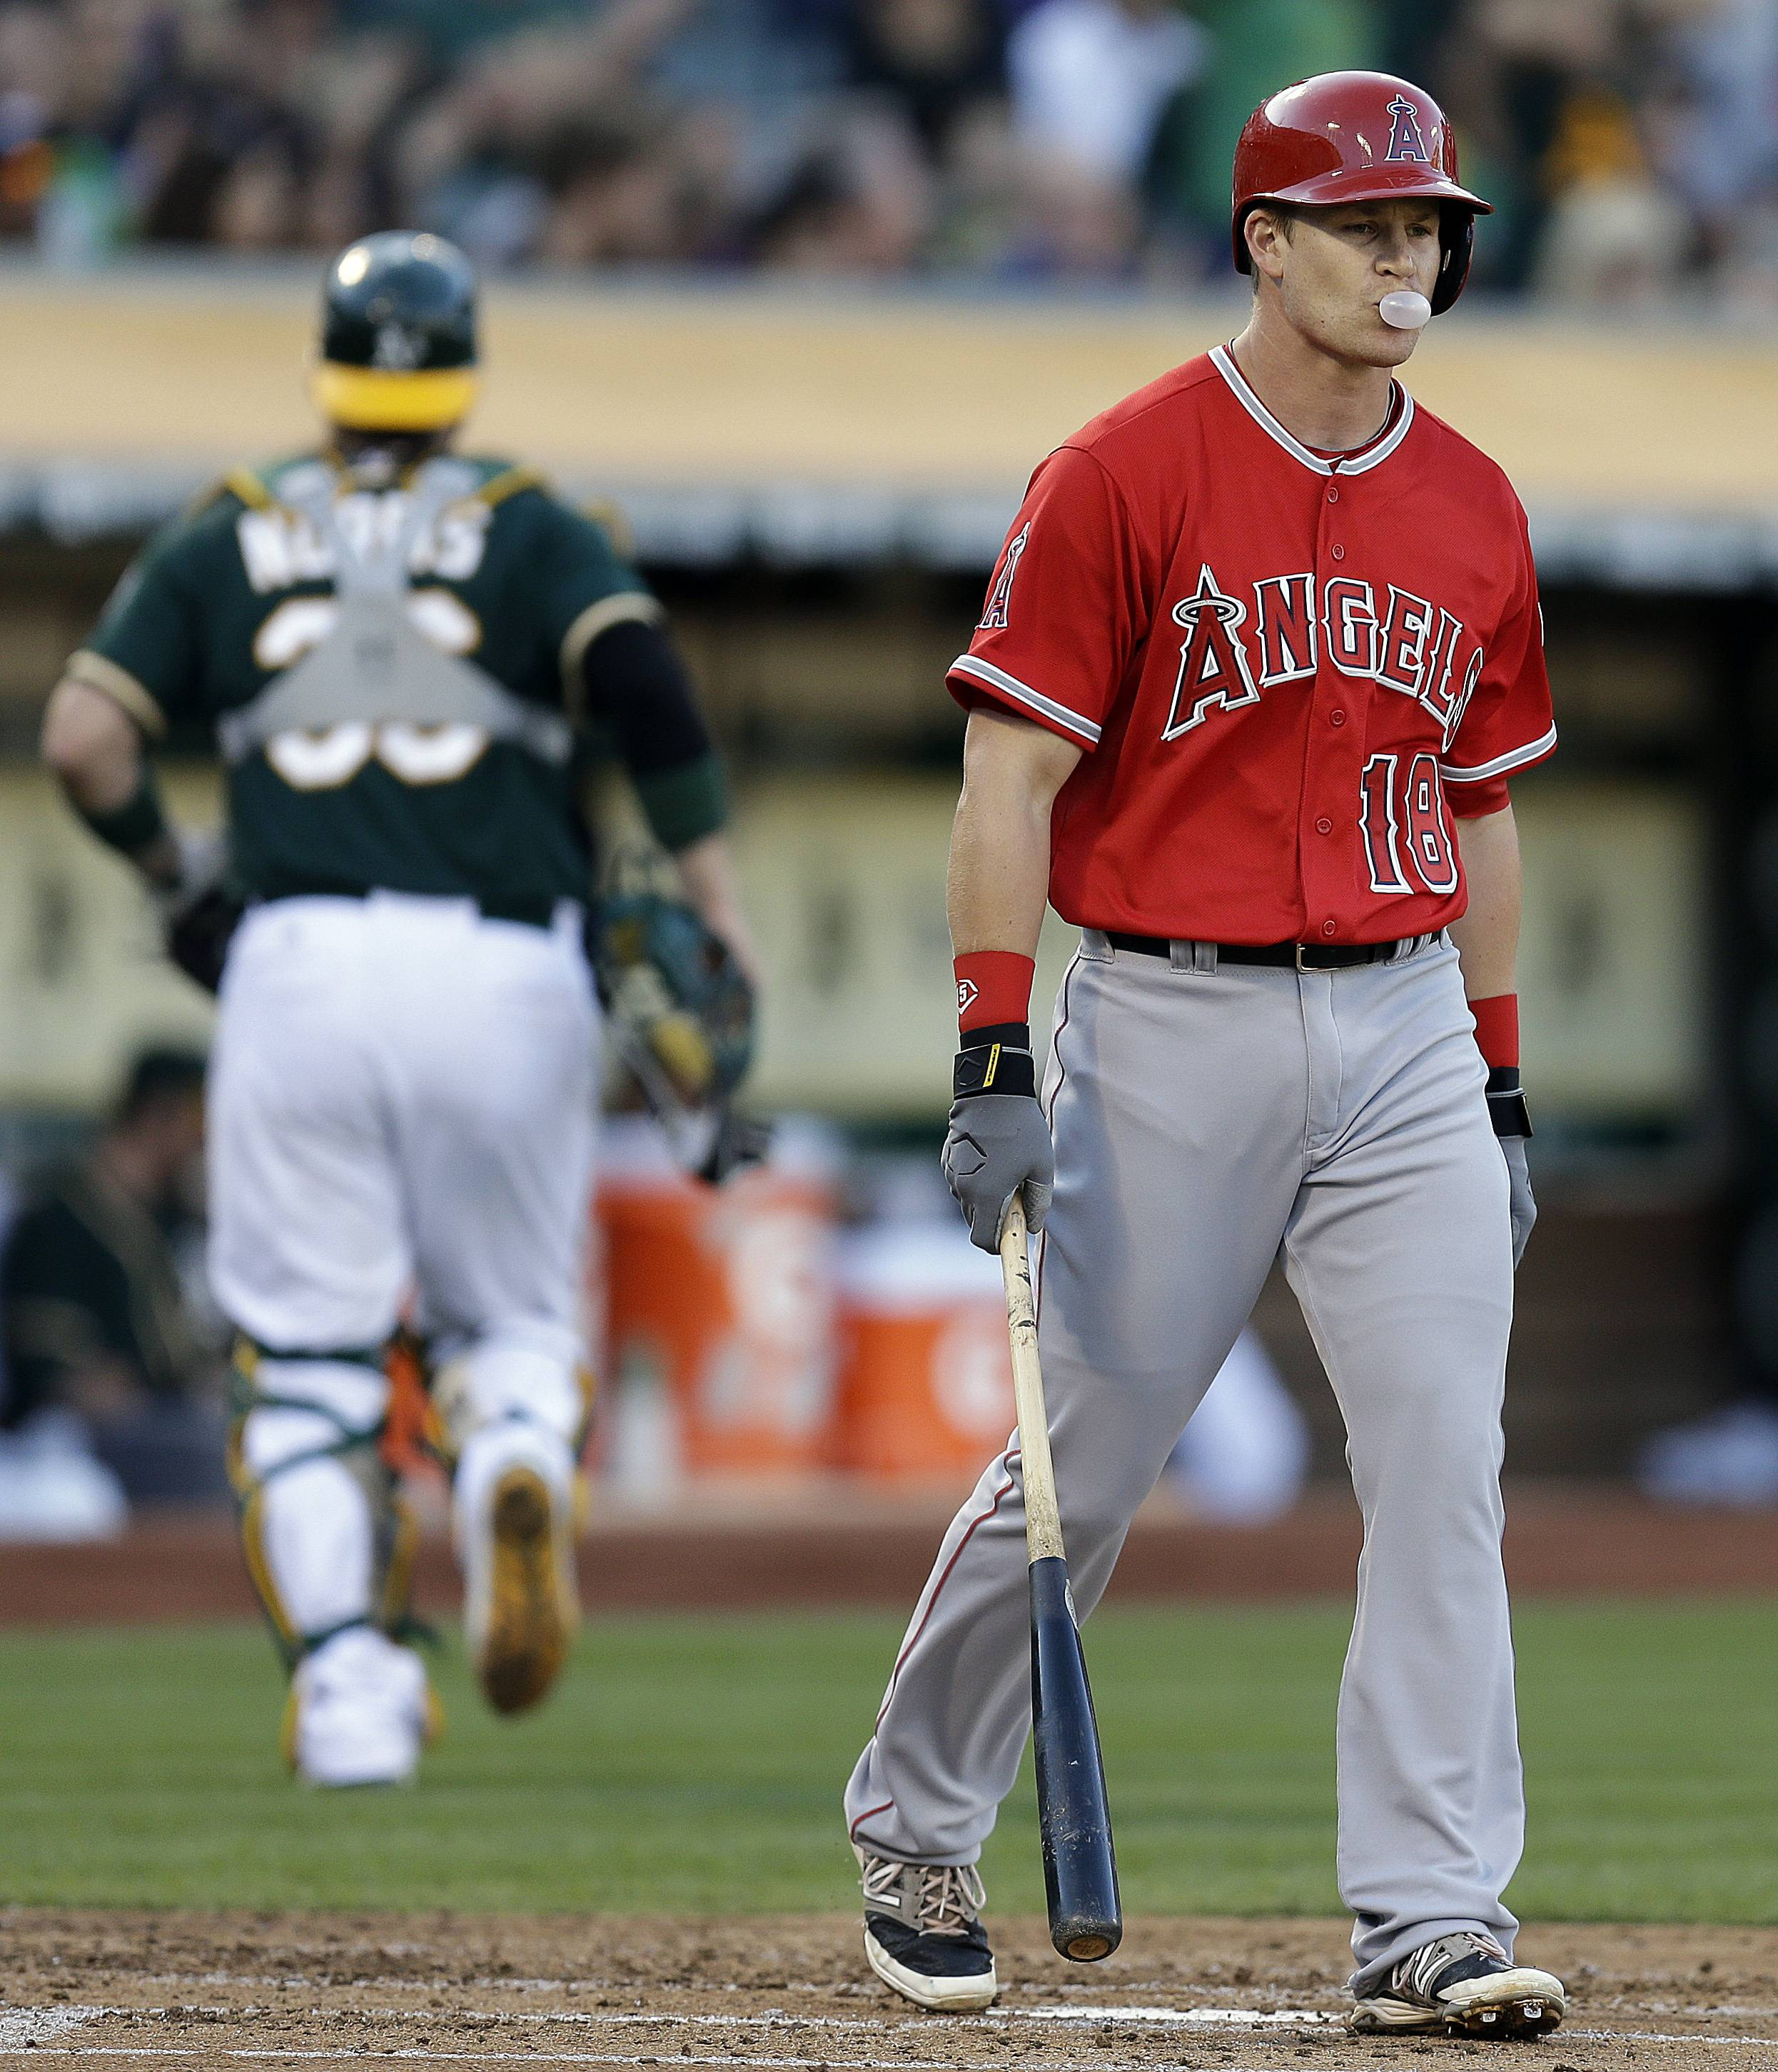 Los Angeles Angels' Gordon Beckham, right, blows a bubble after being called out on strikes from Oakland Athletics' Jon Lester in the second inning of a baseball game Saturday, Aug. 23, 2014, in Oakland, Calif.